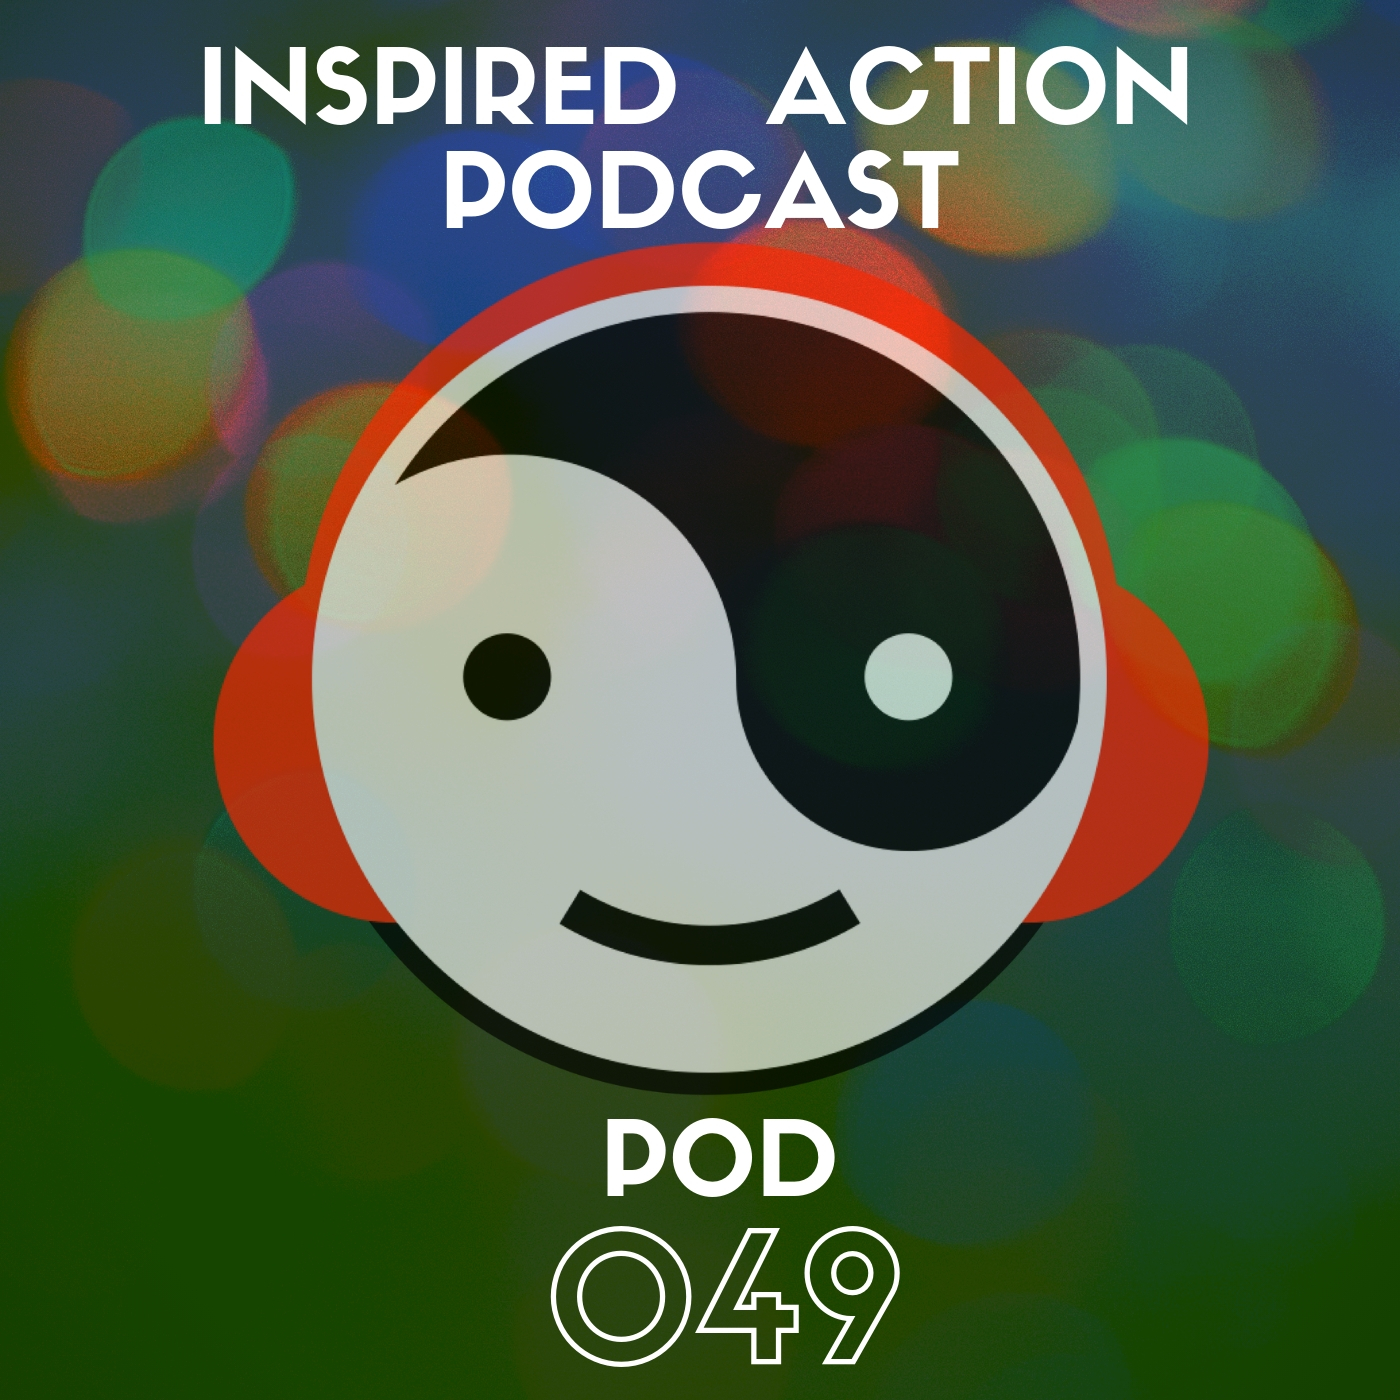 b8221c4b3f 049 The BIG Astrology question! Plus, other Listeners' Q&A's that will rock  your world! - Inspired Action Podcast